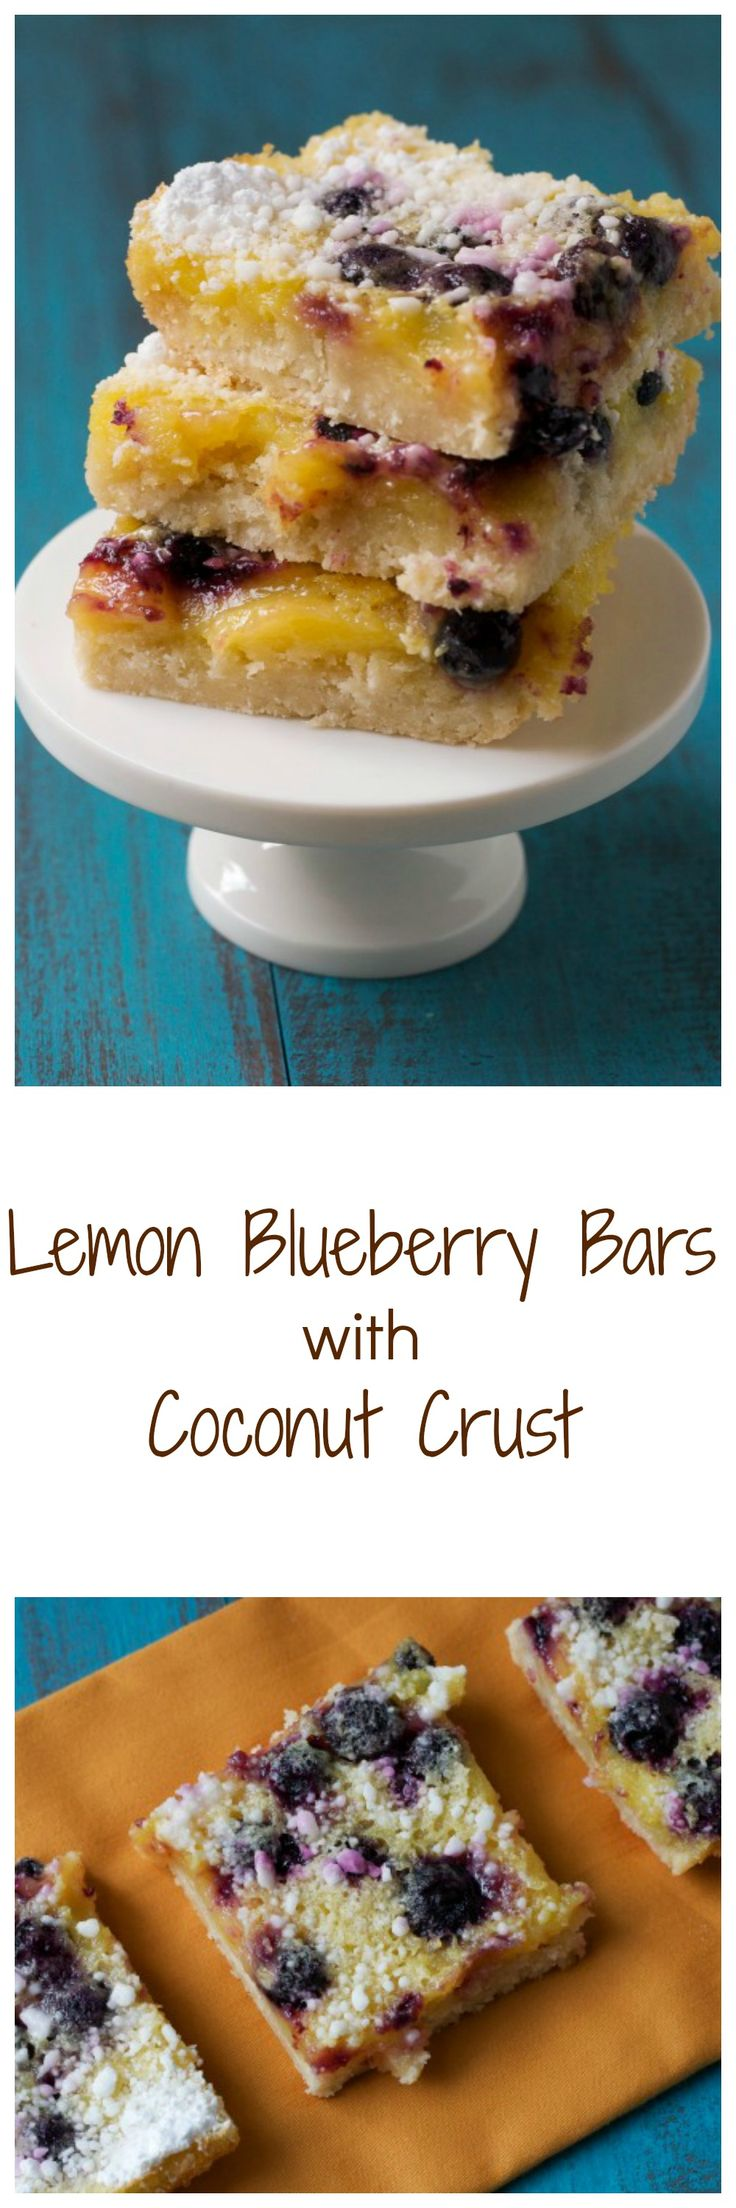 Lemon Blueberry Bars with Coconut Crust - the PERFECT dessert for citrus lovers!